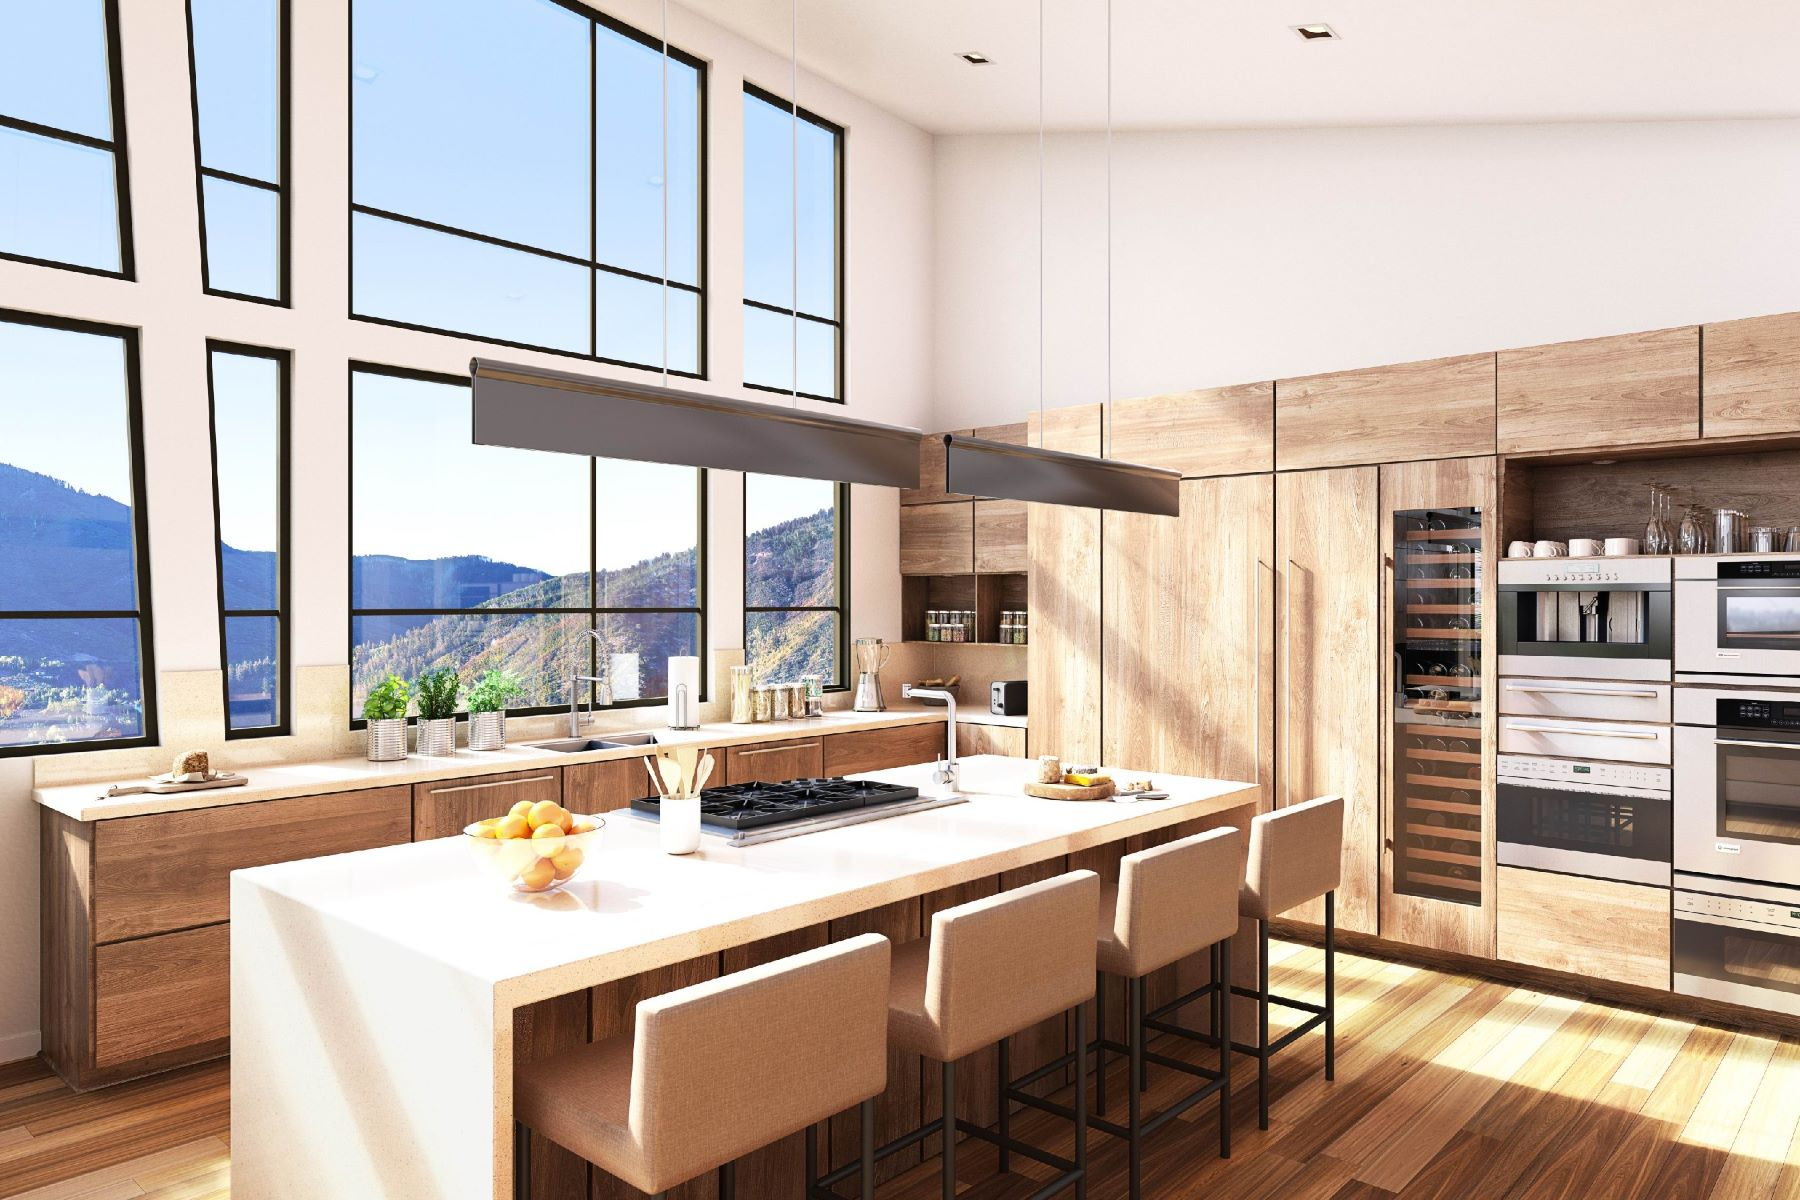 Additional photo for property listing at One Aspen TBD S. Aspen Street #10 Aspen, Colorado 81611 United States